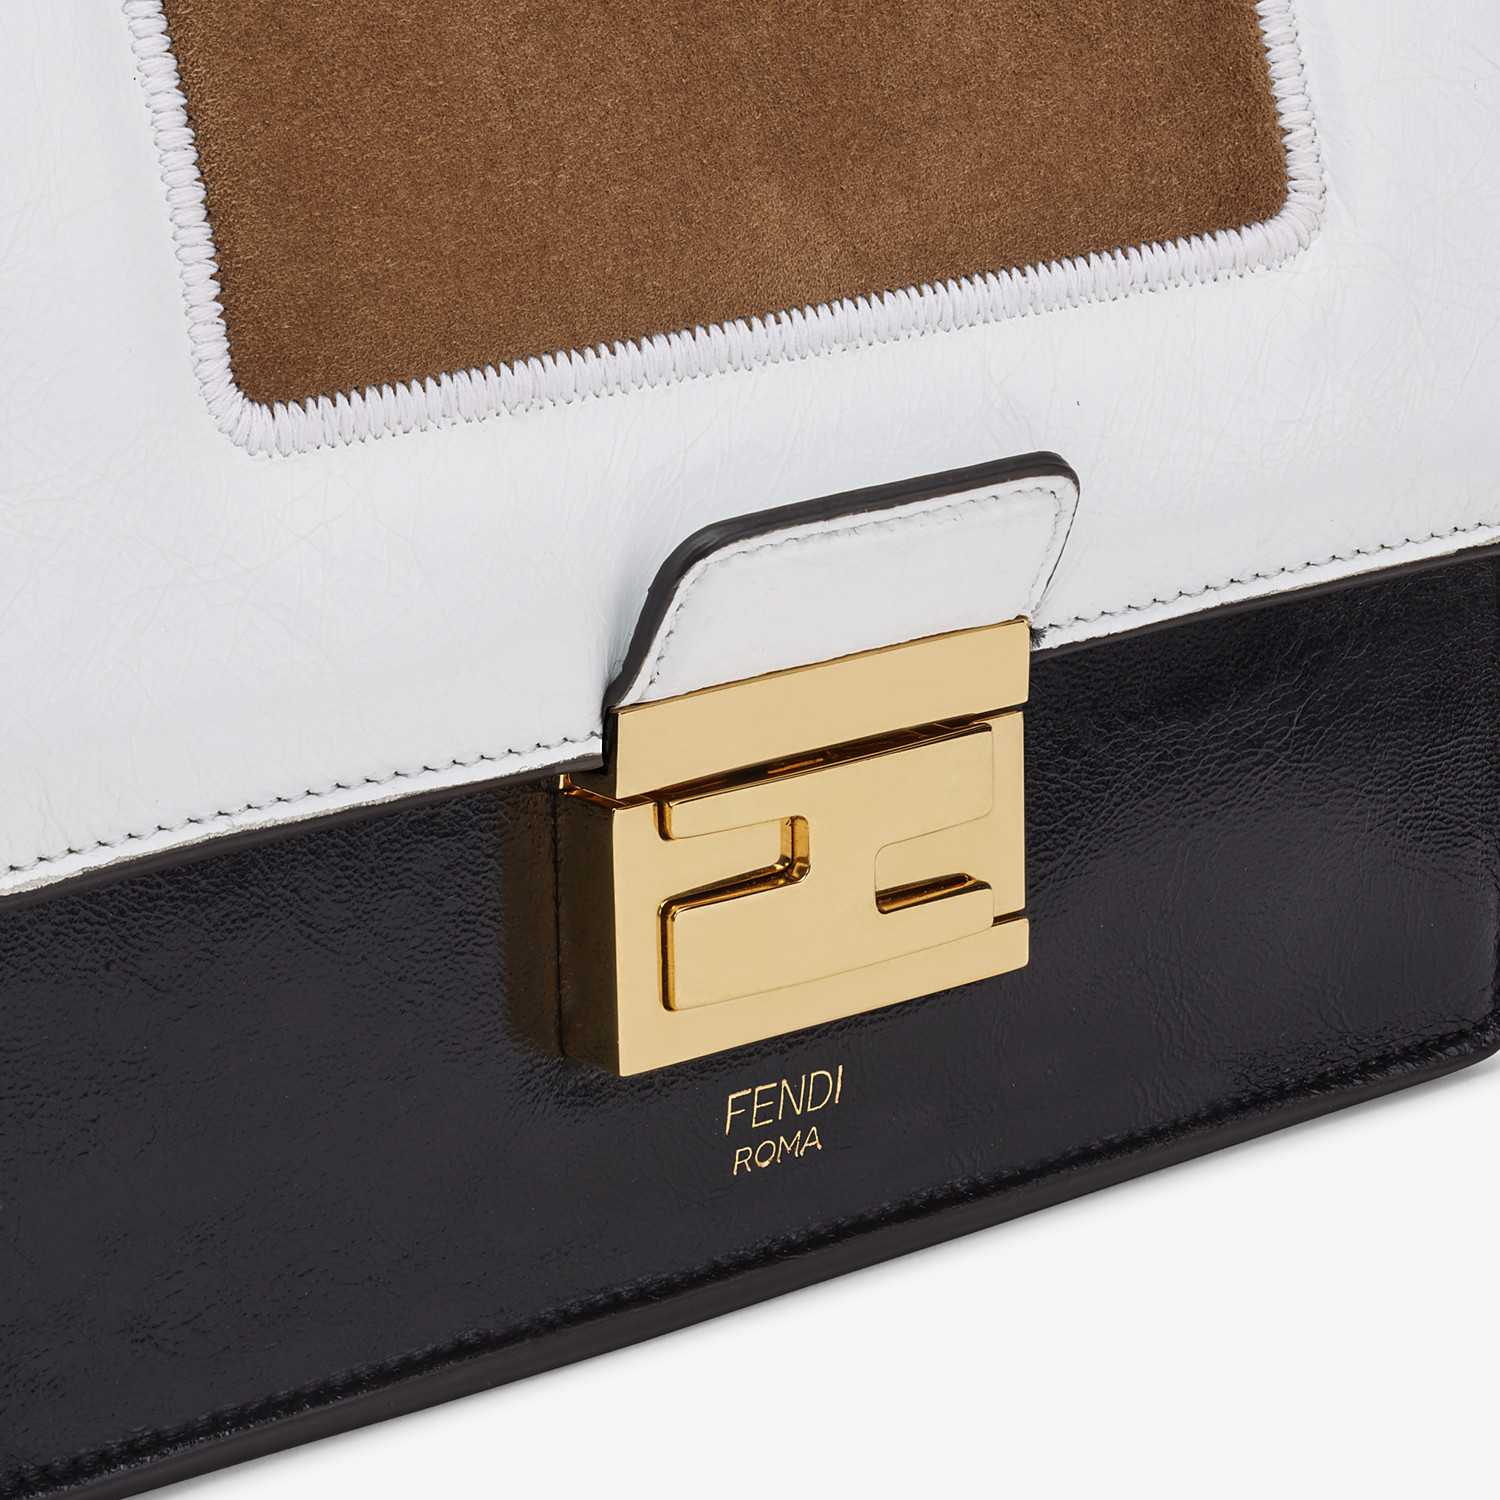 FENDI KAN U SMALL - Leather and suede minibag - view 6 detail